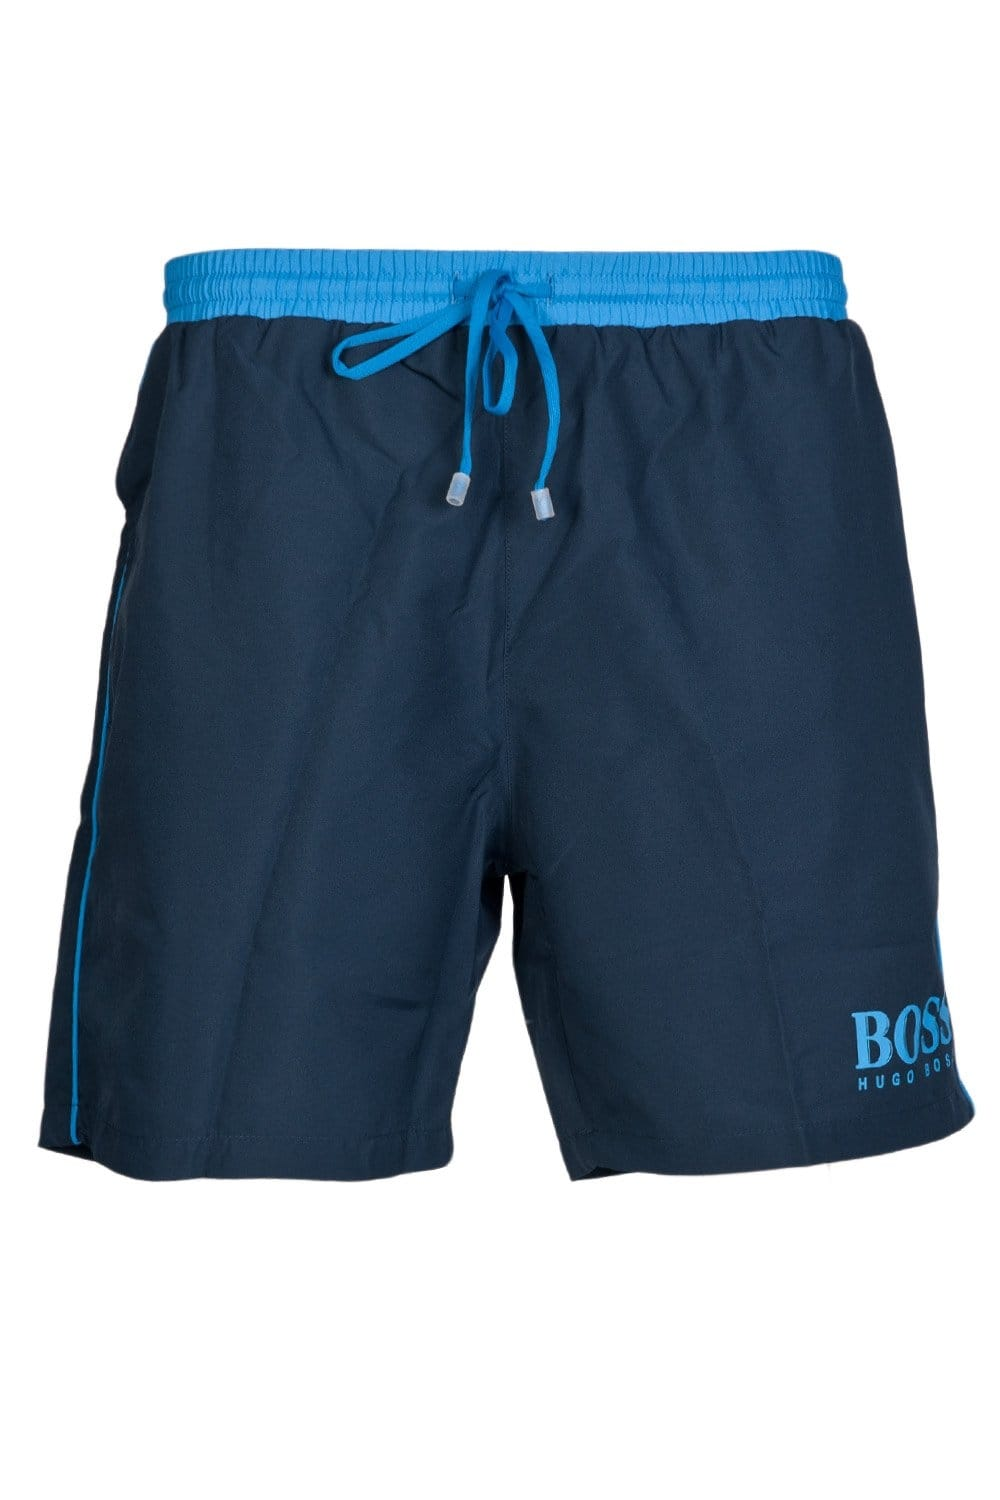 b514816a45 HUGO BOSS BLACK Swimming Shorts in Pink Yellow Black Blue Green and Red  STARFISH BM 50220844